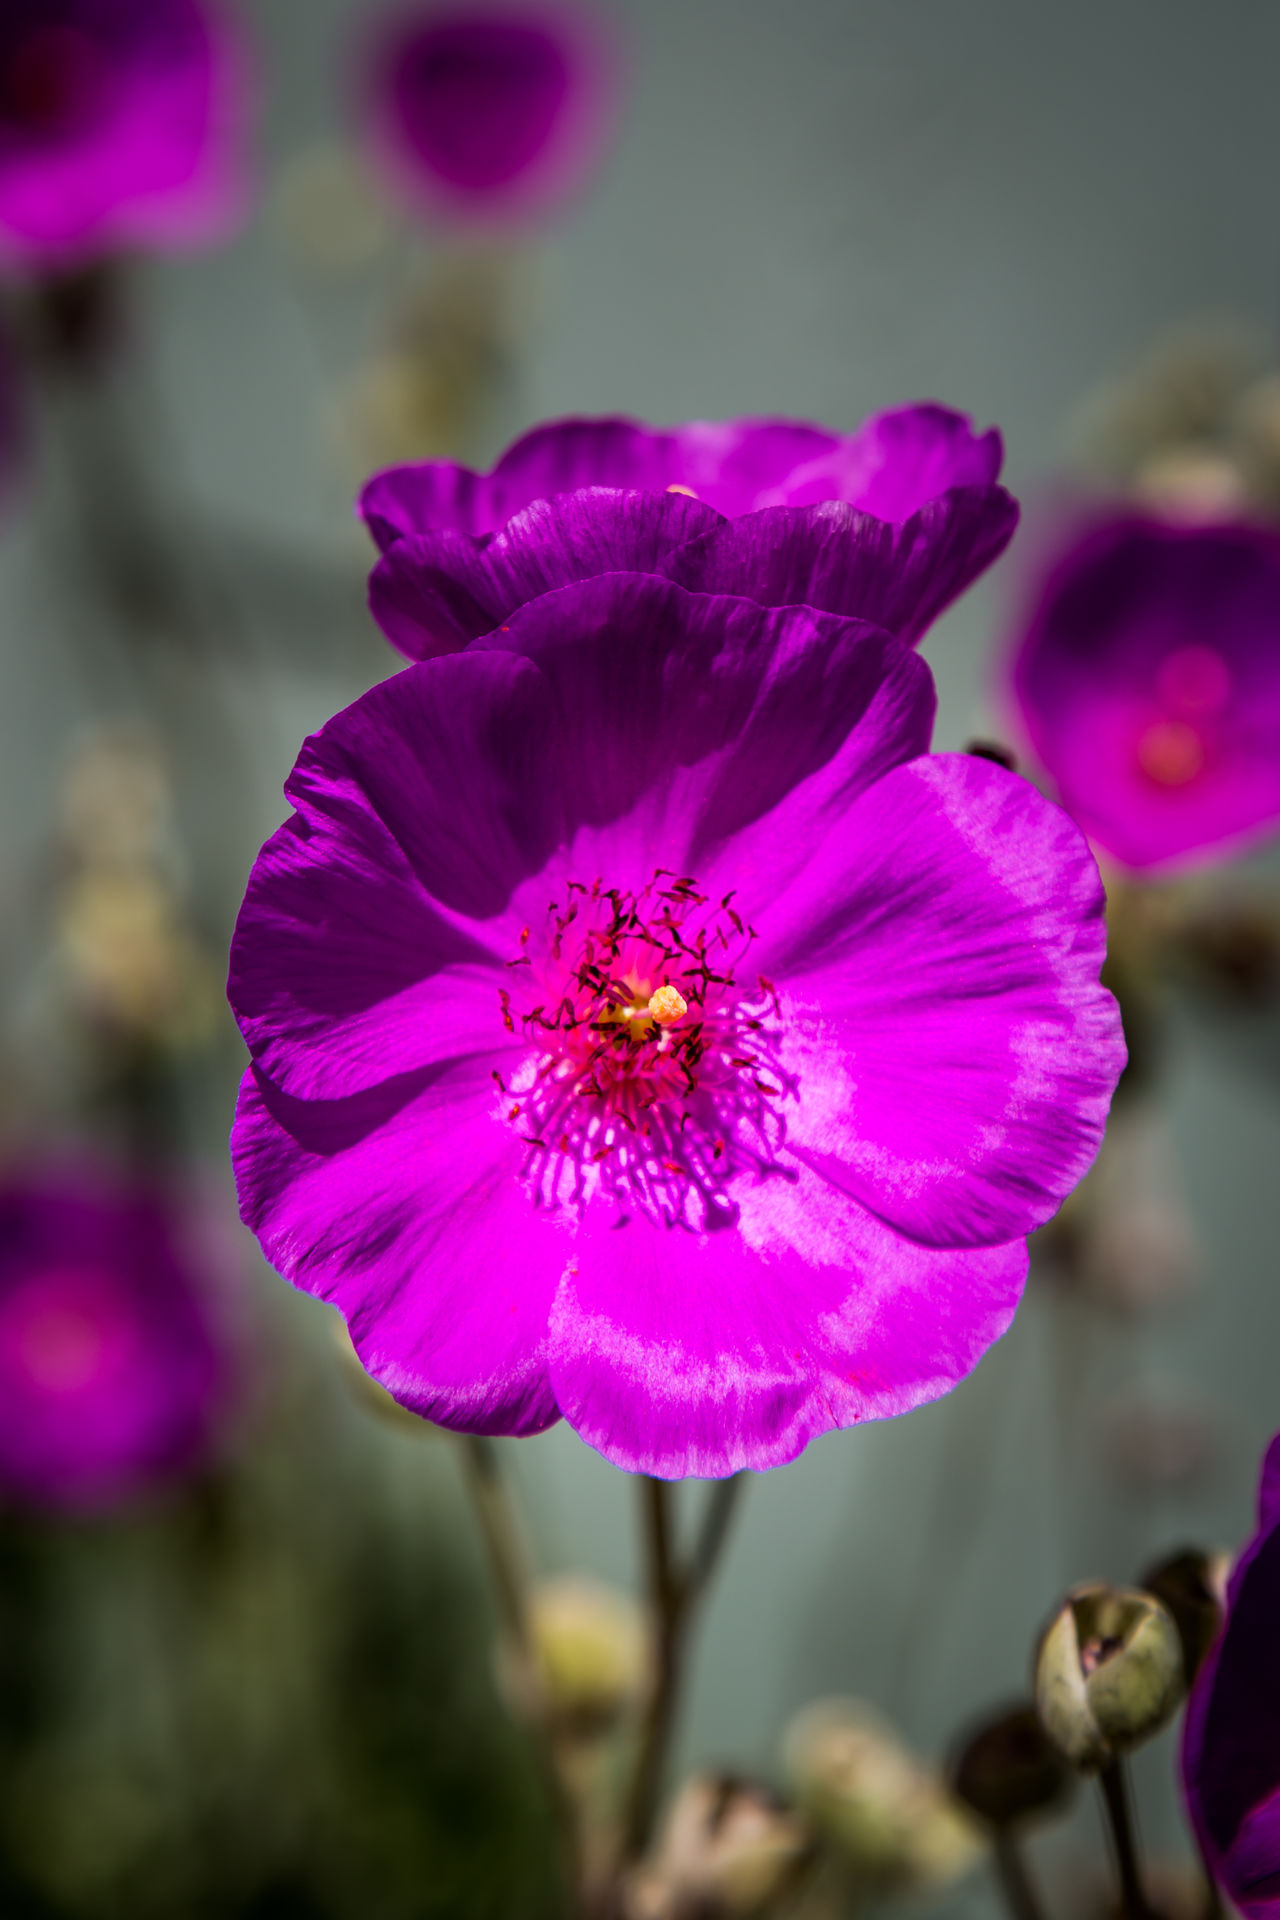 Purple Poppy Beauty In Nature Blooming Close-up Day Flower Flower Head Focus On Foreground Fragility Freshness Growth Nature No People Outdoors Petal Pink Color Plant Poppies  Poppy Purple Purple Poppy